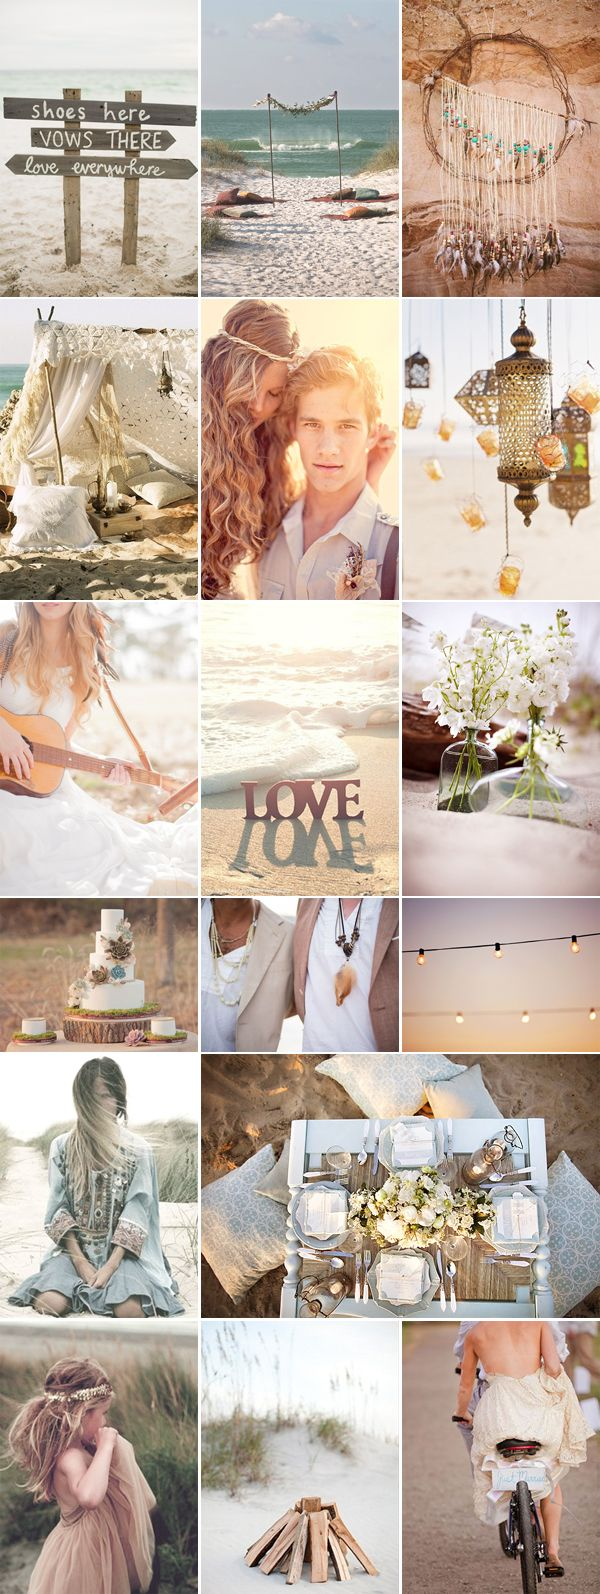 Boho Chic Beach Wedding Inspiration by Pixel & Ink Wedding Blog via WedShare.com